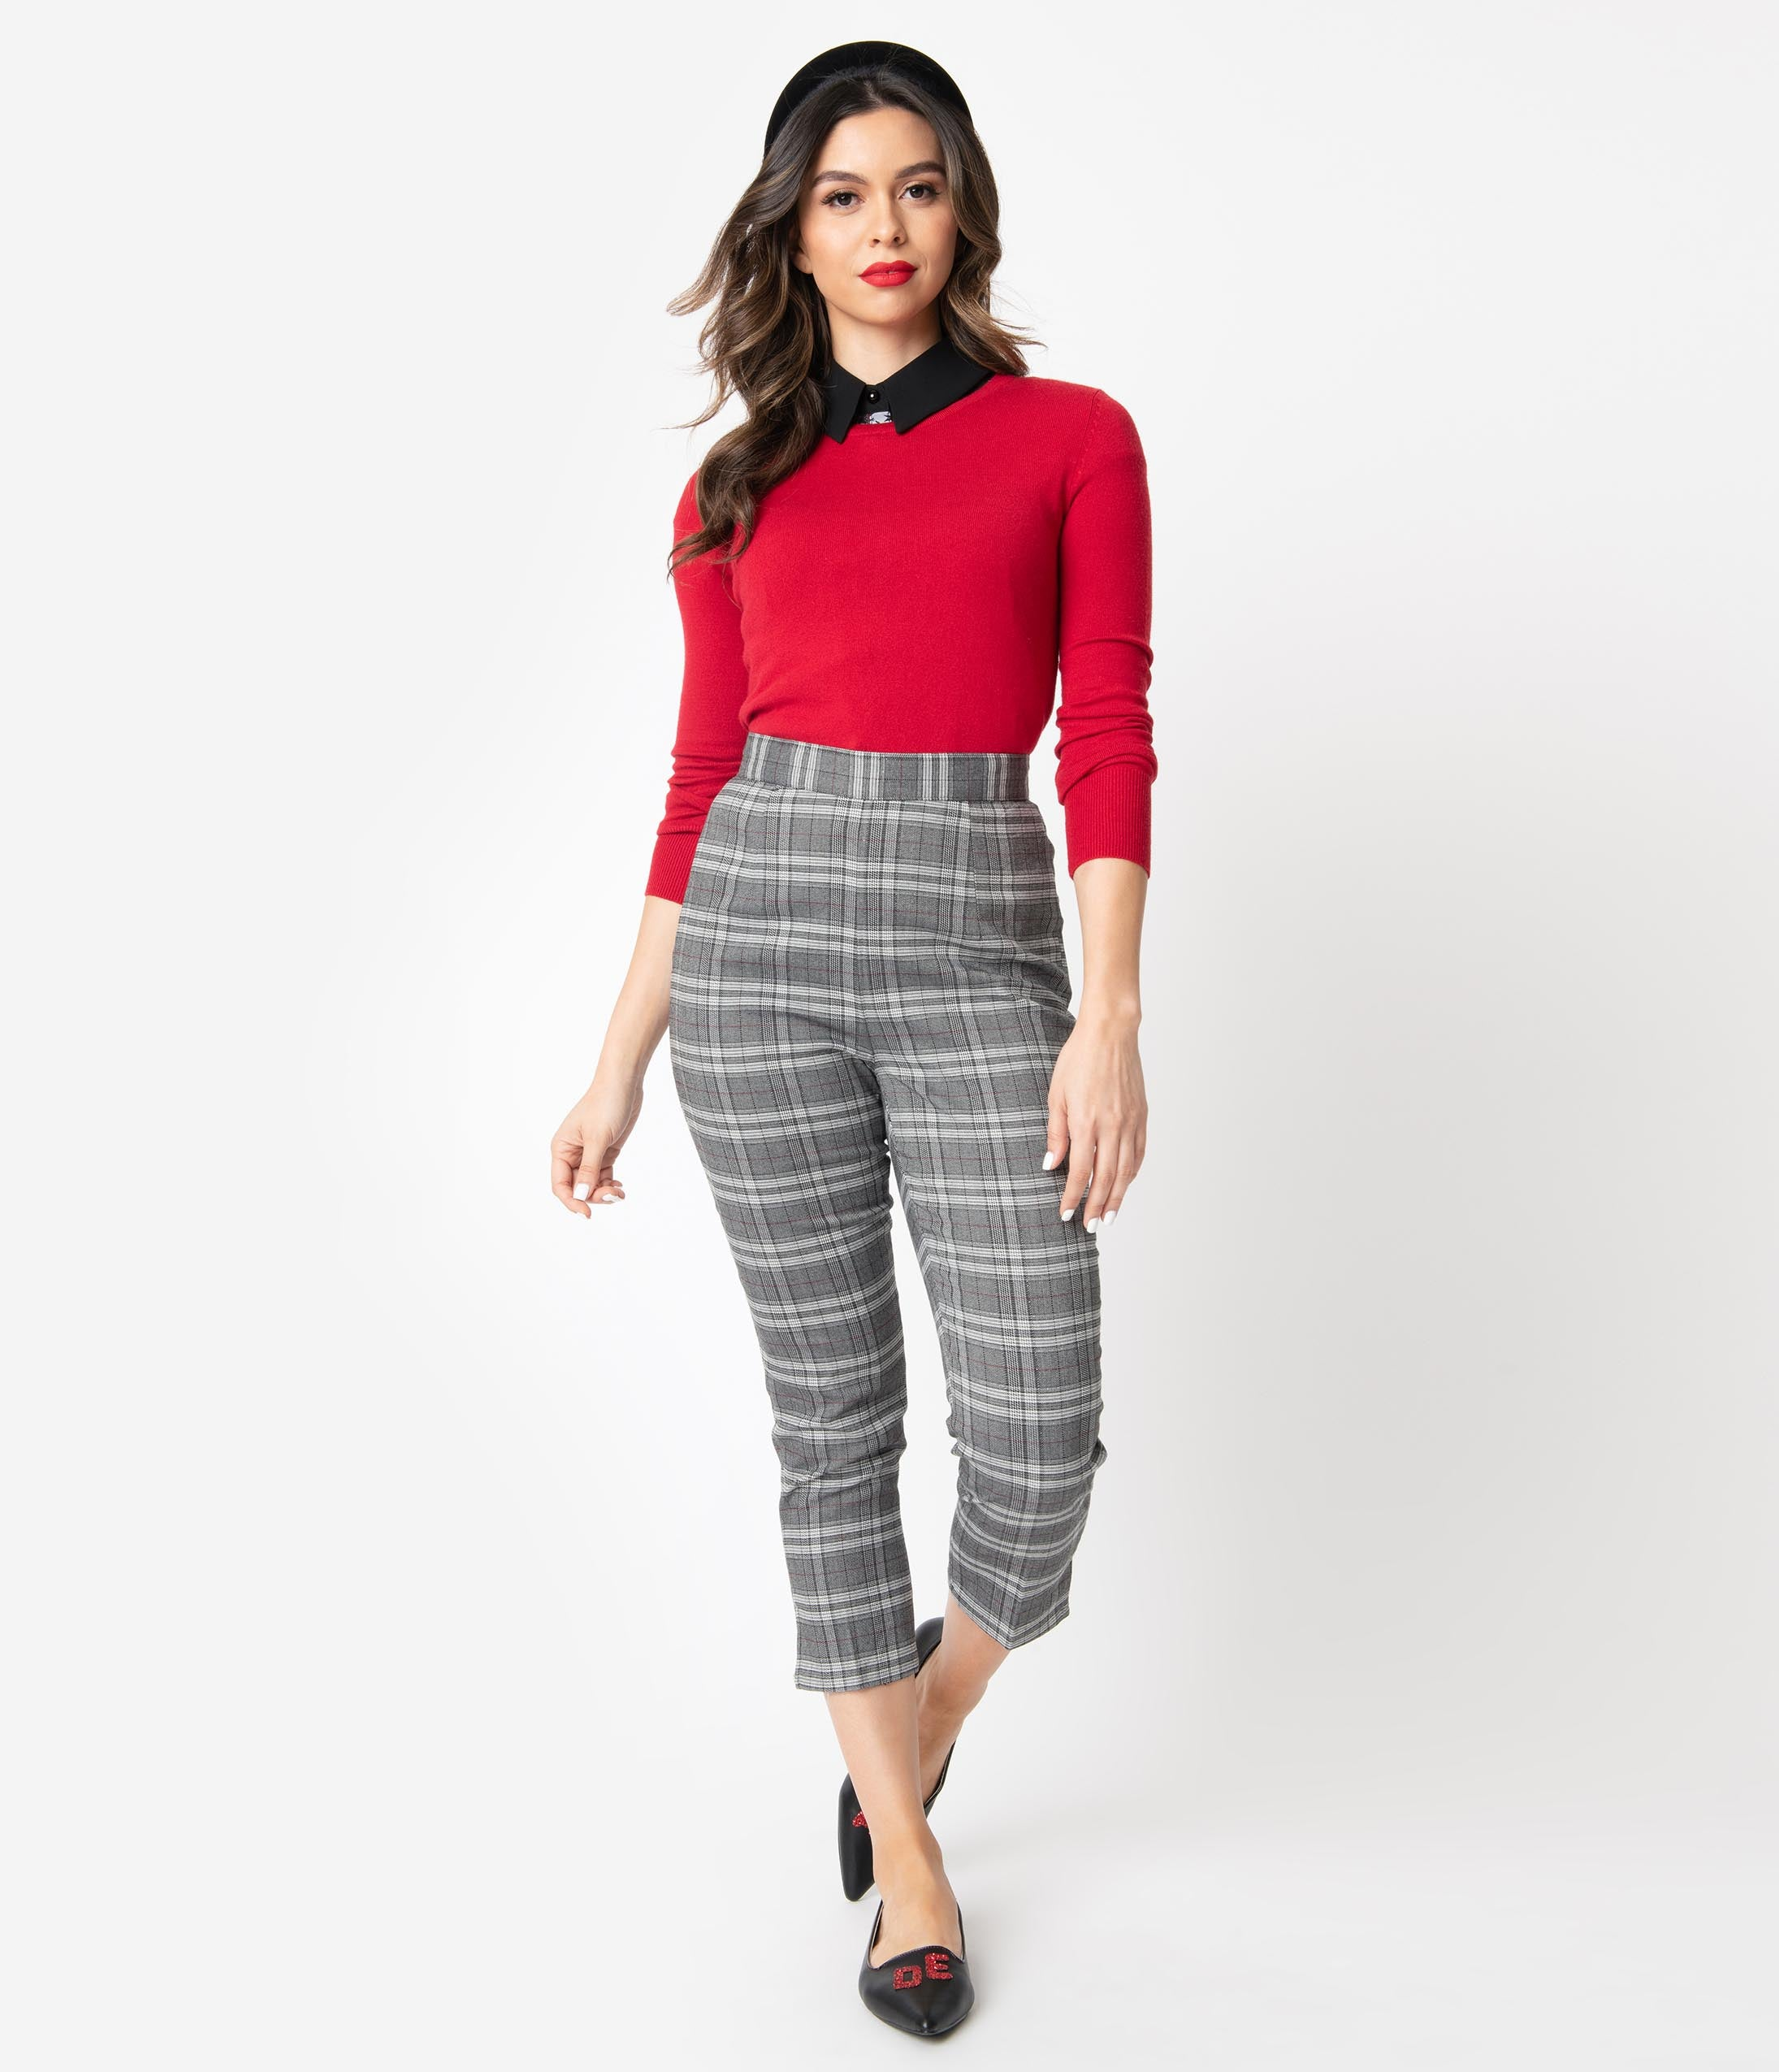 Plaid Pants Outfits Women